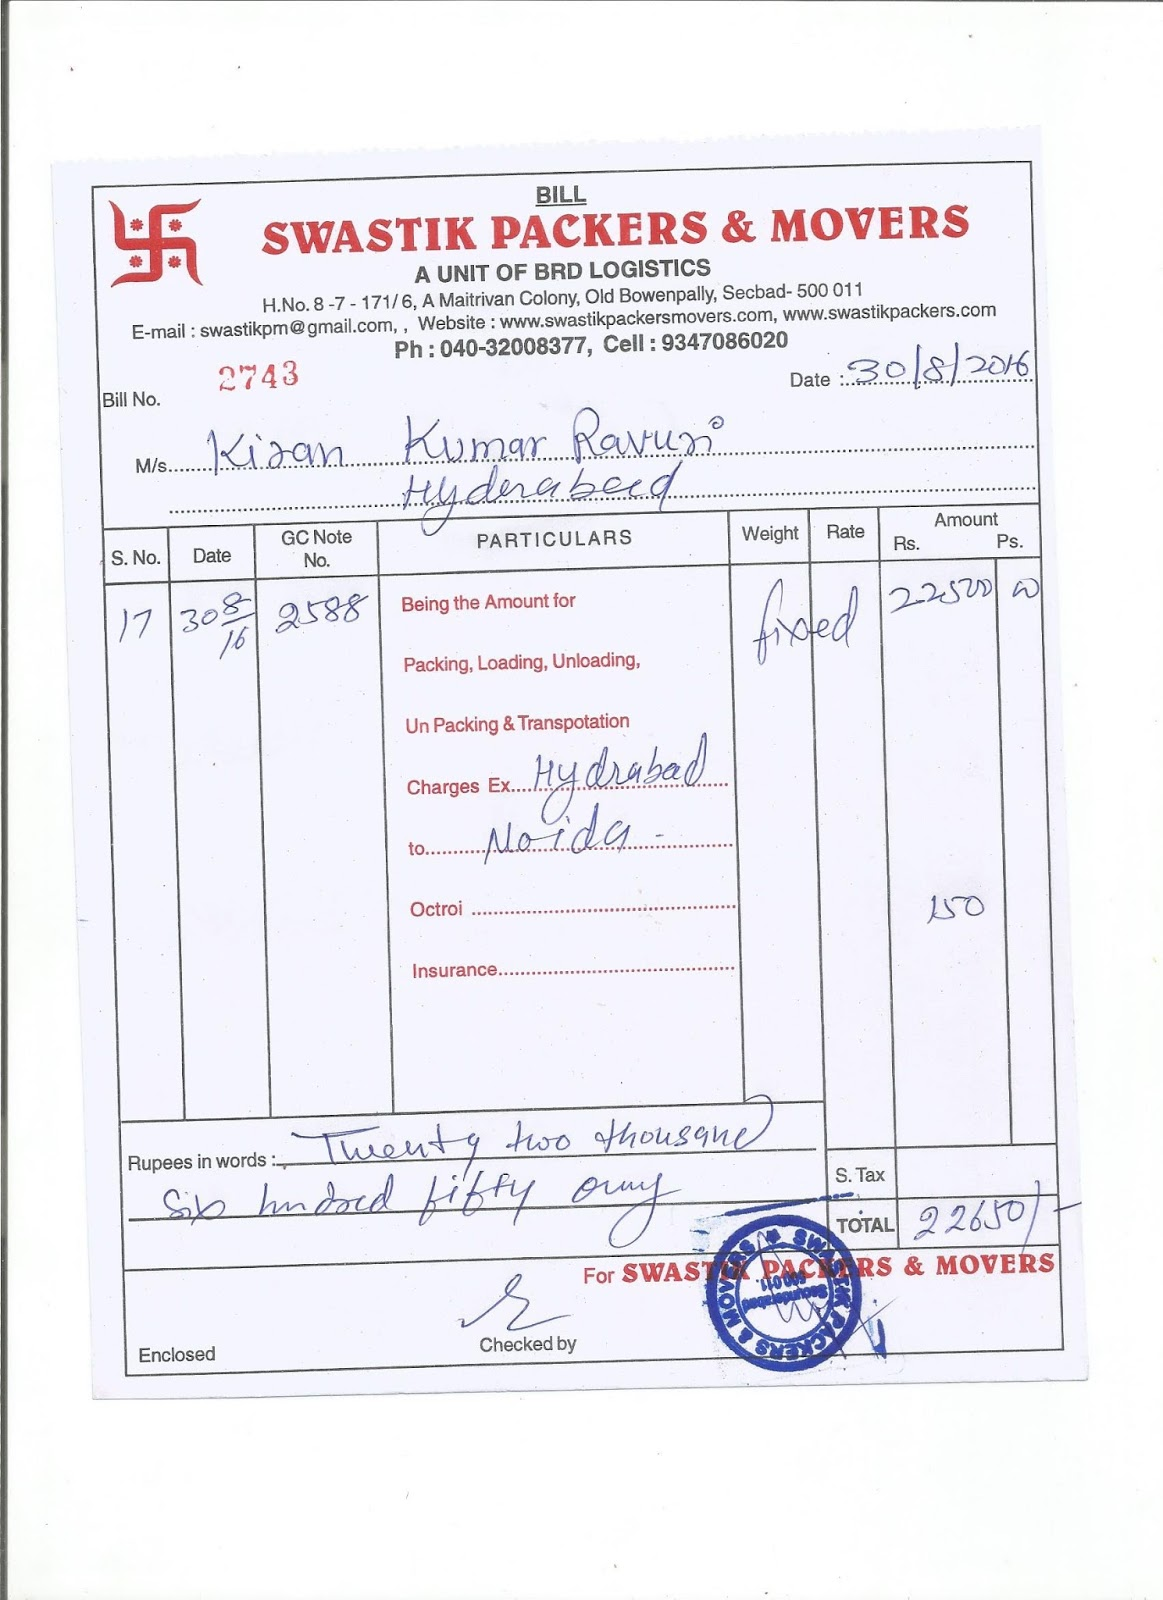 movers and packers bill